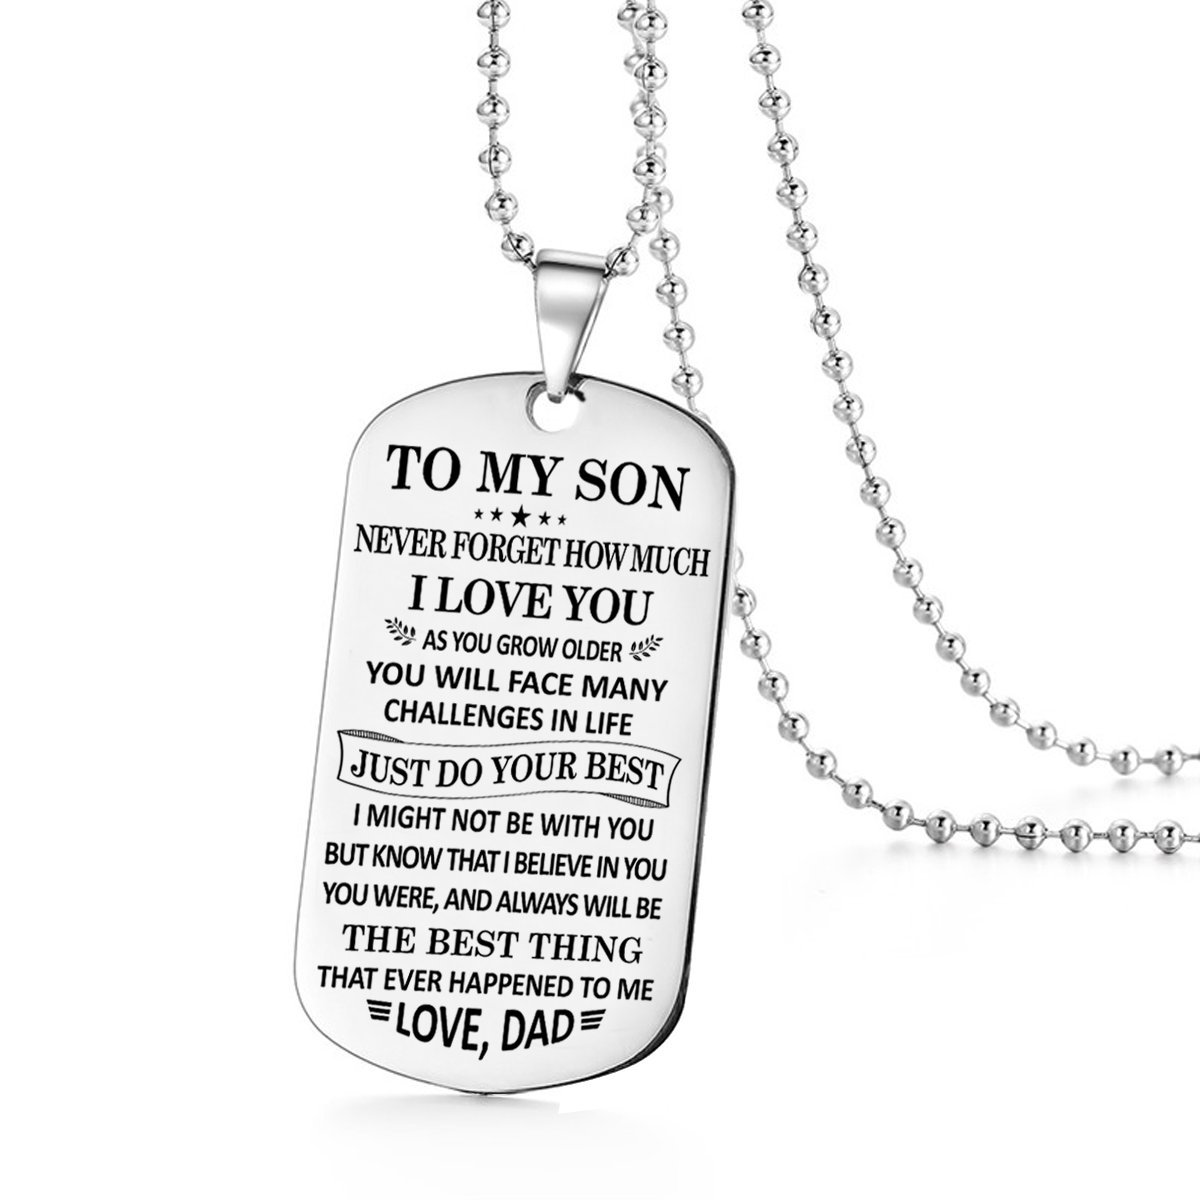 To My Son Just Do Your Best Love Dad Daddy Father Dog Tag Military Air Force Navy Coast Guard Necklace Ball Chain Gift for Best Son Birthday Graduation Stainless Steel